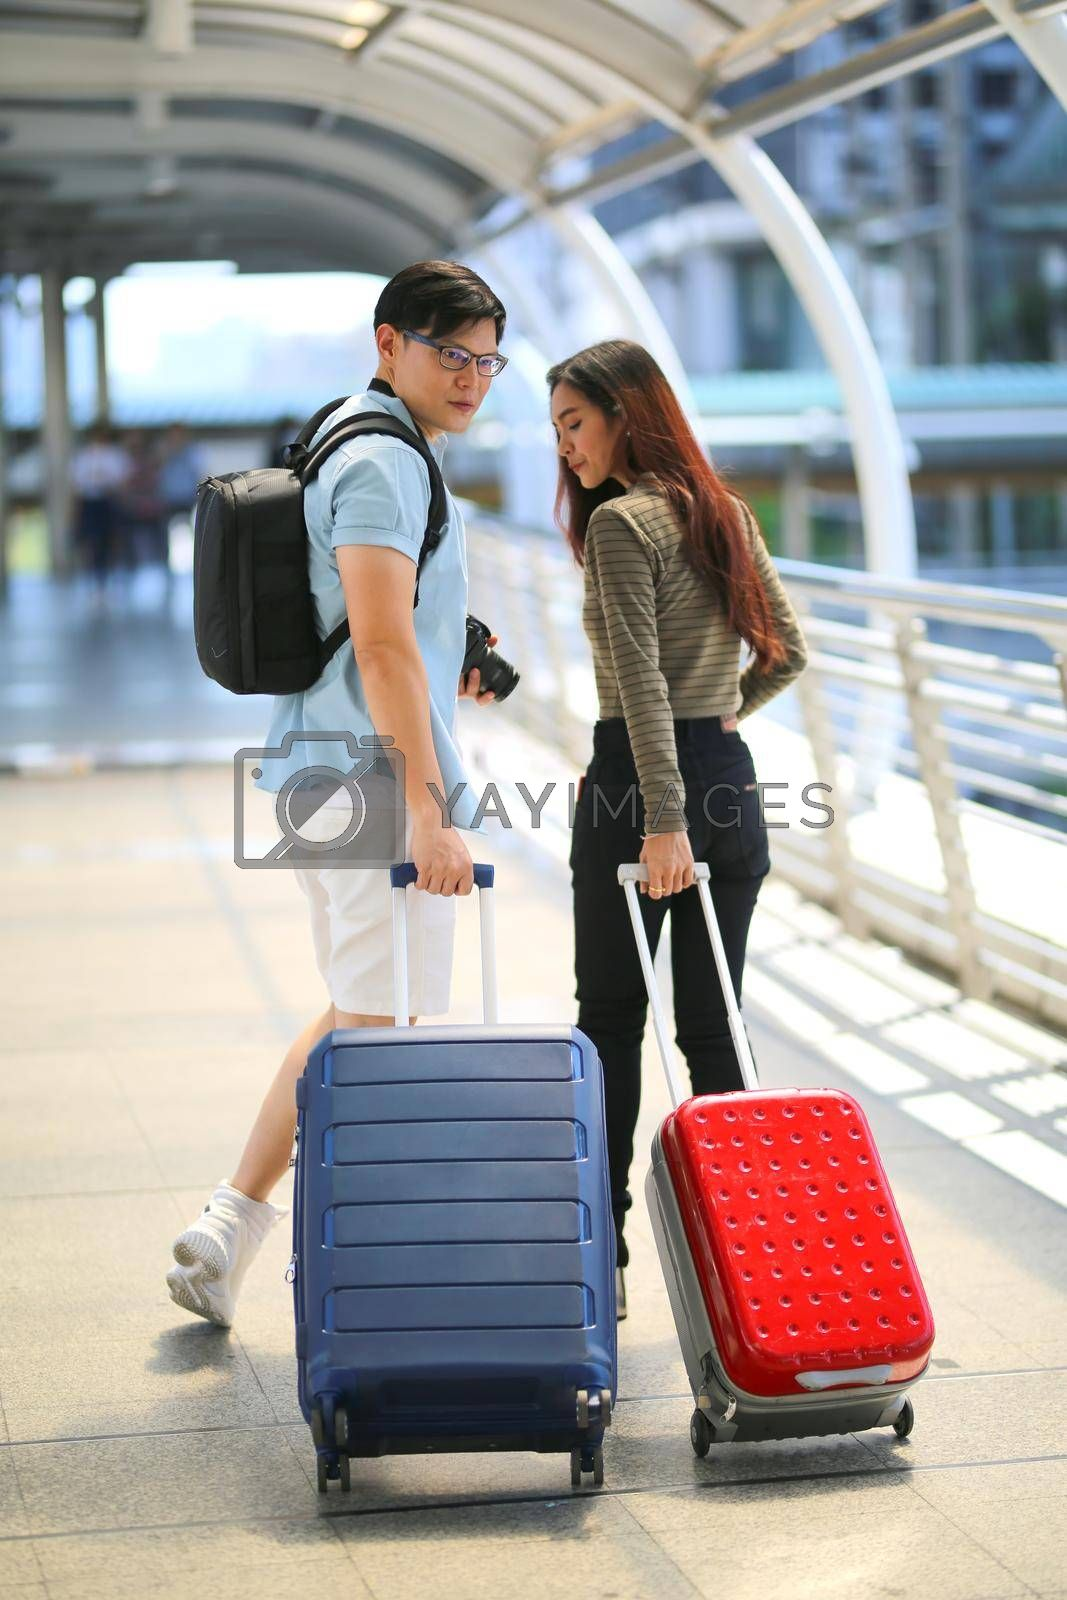 Couple love on summer vacation travel. Man and Woman walking on city romantic honeymoon, couple lover on travel concept.